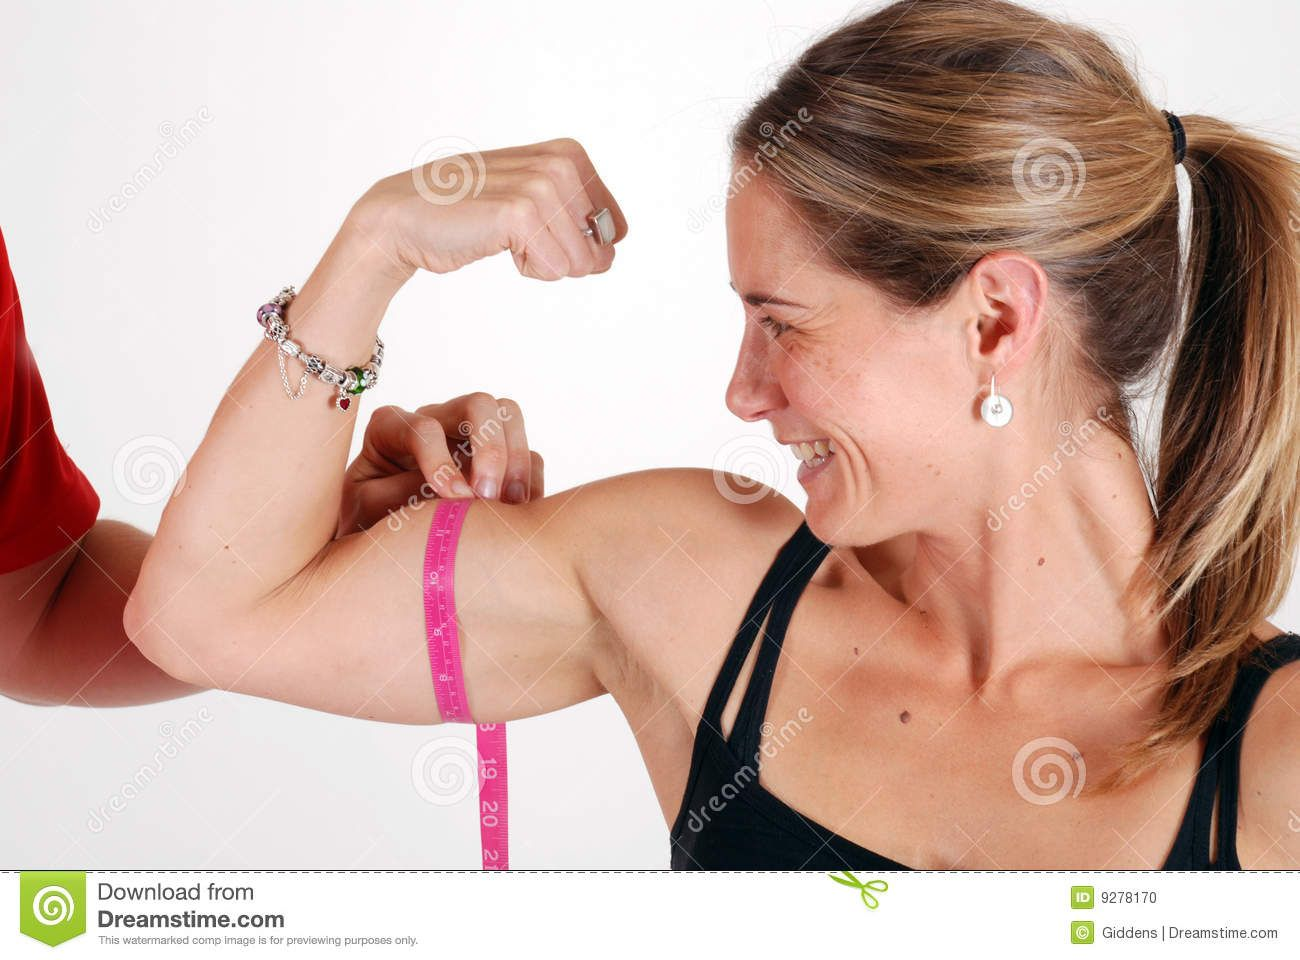 Sexy female arms